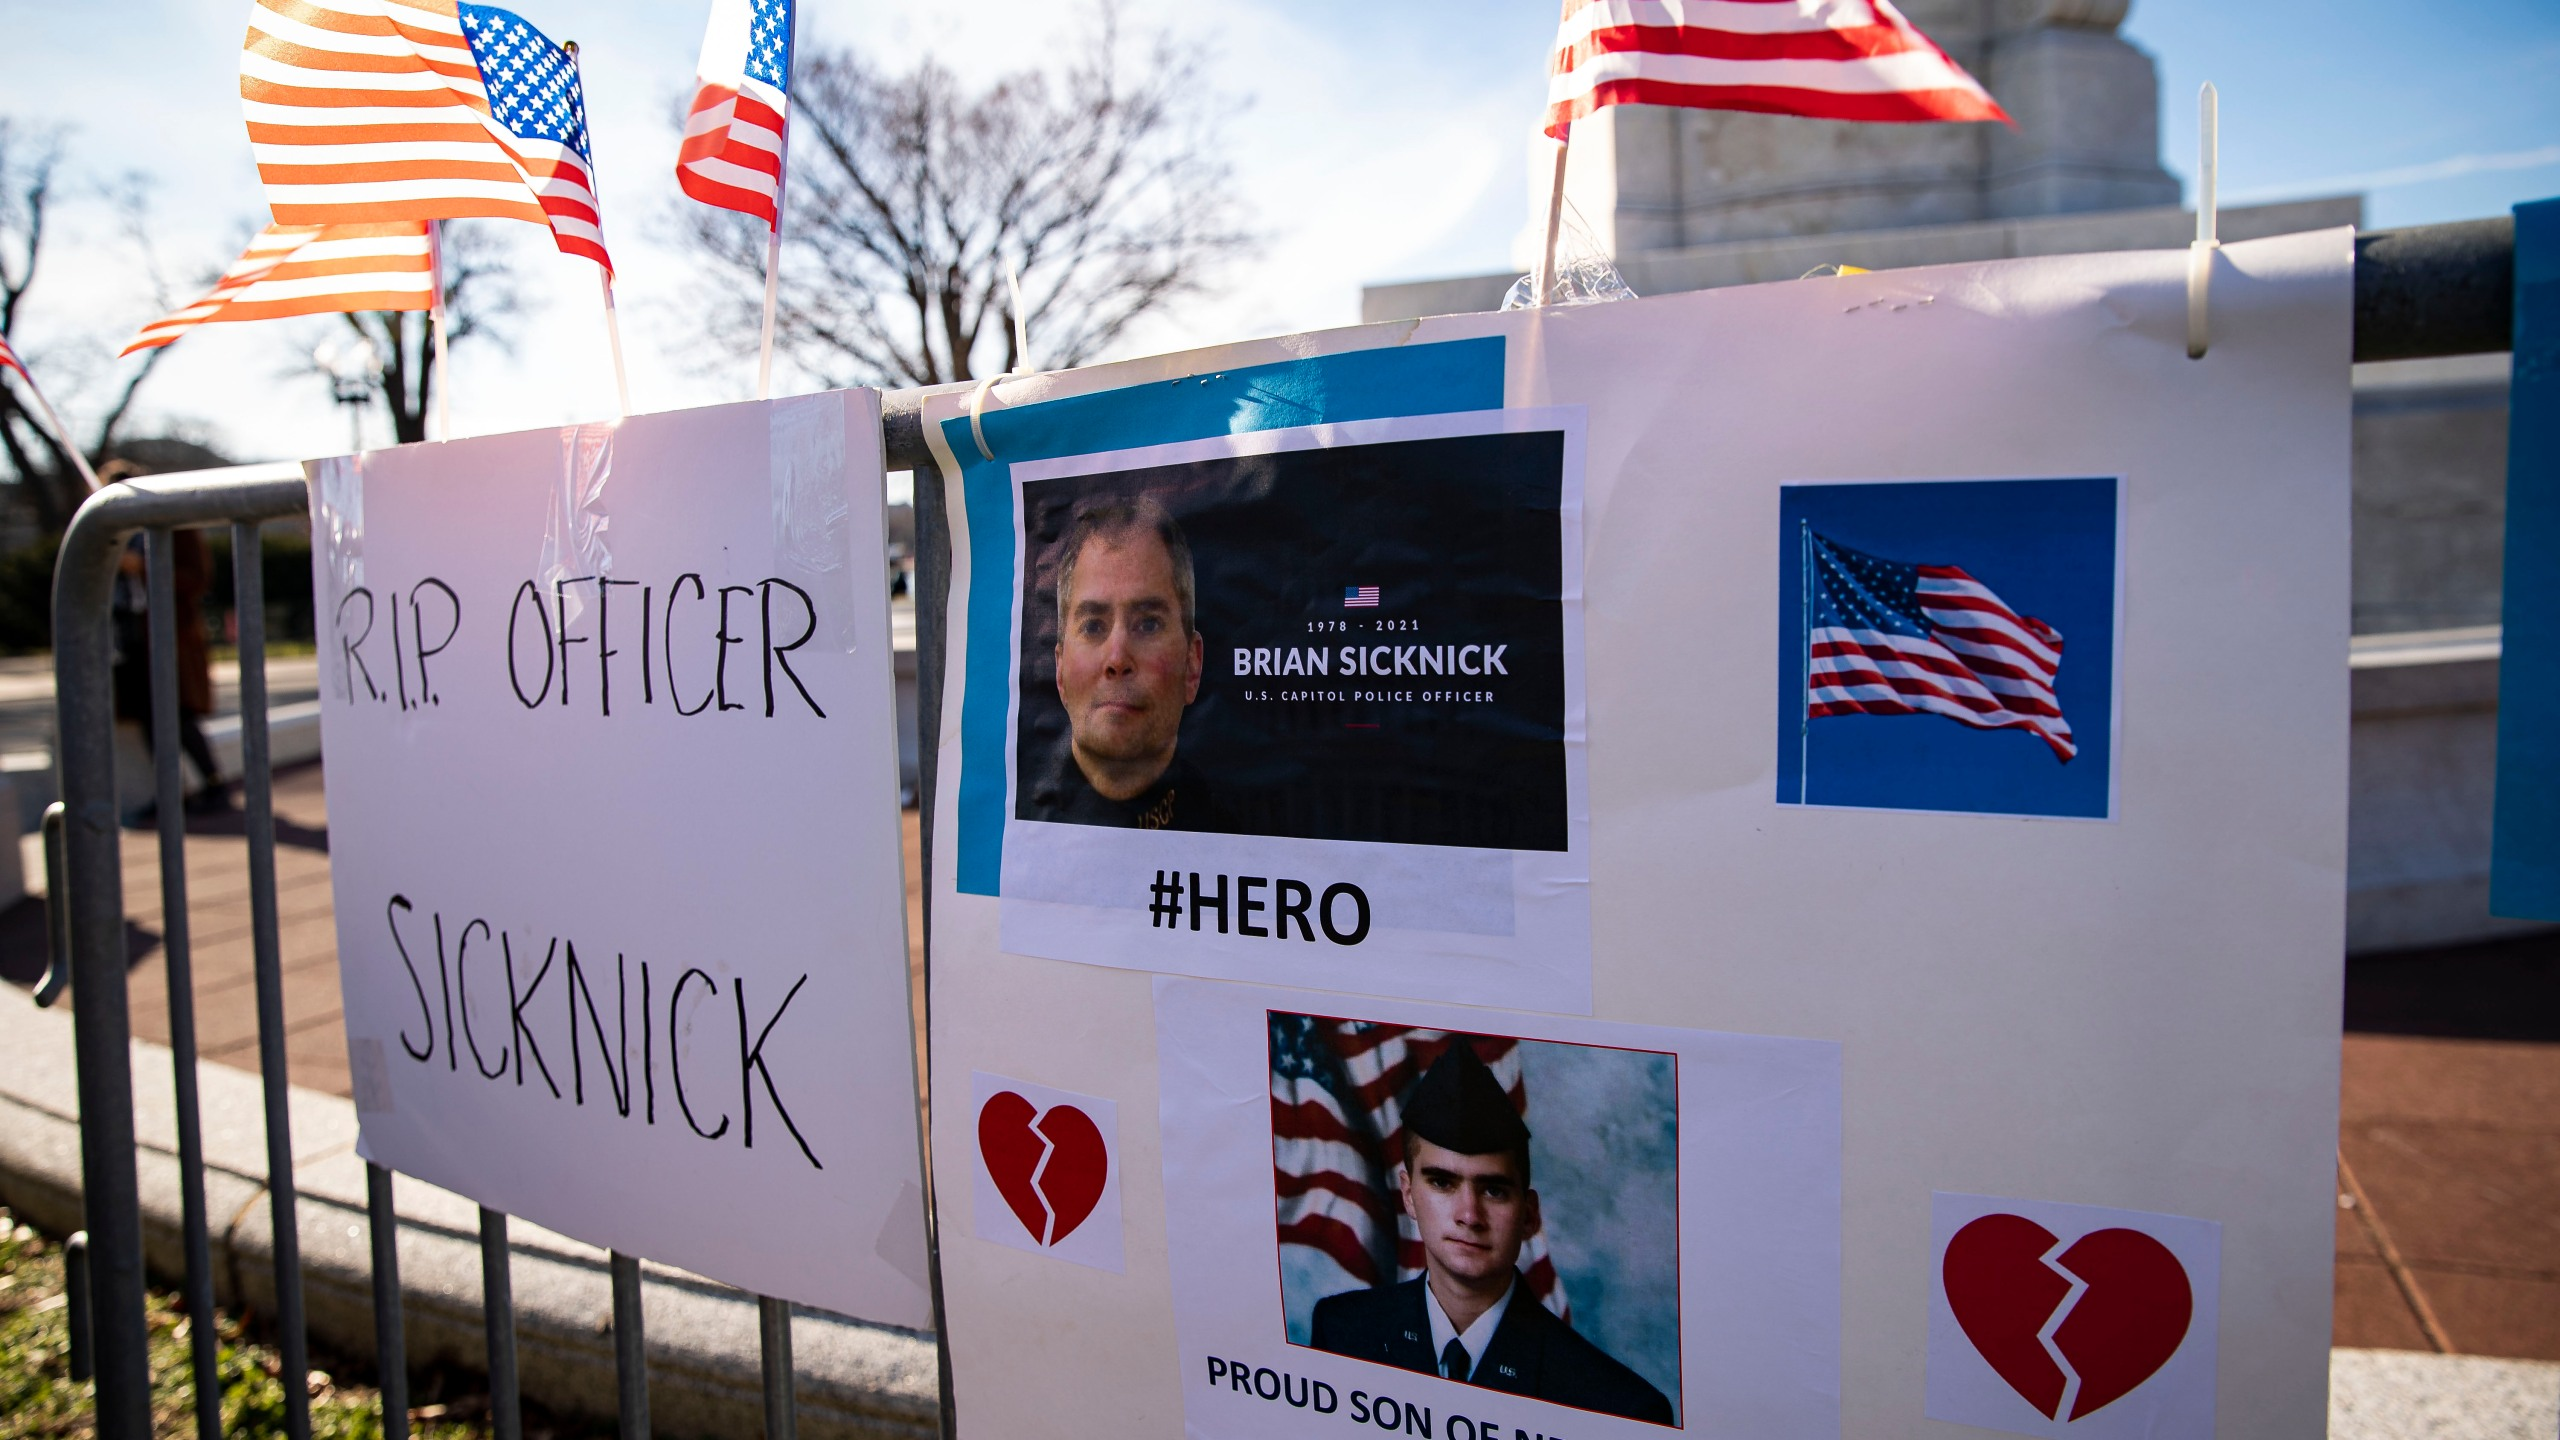 A memorial for Brian Sicknick, the U.S. Capitol Police officer who died from injuries following the siege on the building in early January 2021, is remembered in a memorial near the U.S. Capitol on Jan. 10, 2021 in Washington, D.C. A pro-Trump mob stormed and desecrated the Capitol on Jan. 6 as Congress held a joint session to ratify President-elect Joe Biden's 306-232 Electoral College win over President Donald Trump. (Al Drago/Getty Images)